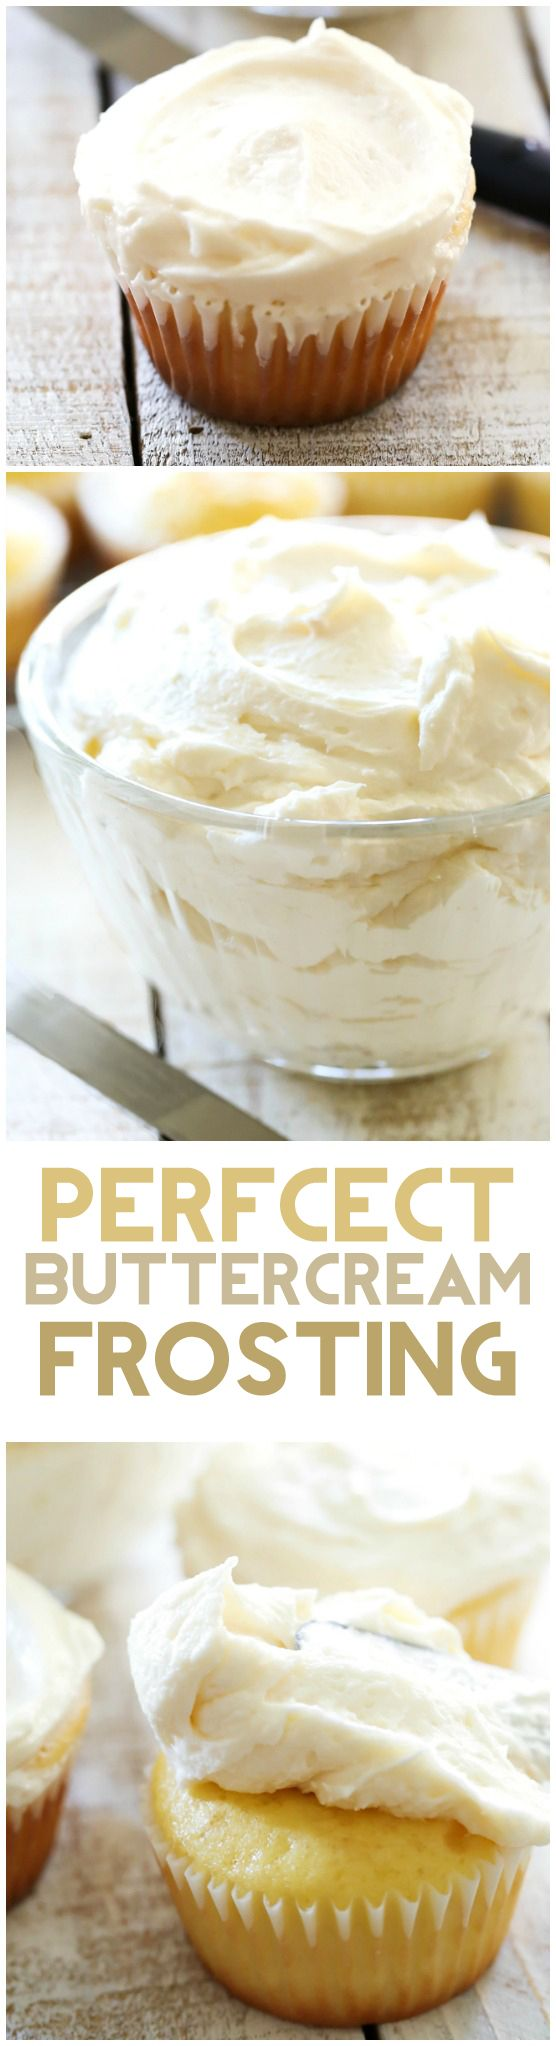 This Classic Buttercream Frosting recipe is perfection! Perfect consistency and perfect flavor! This is my